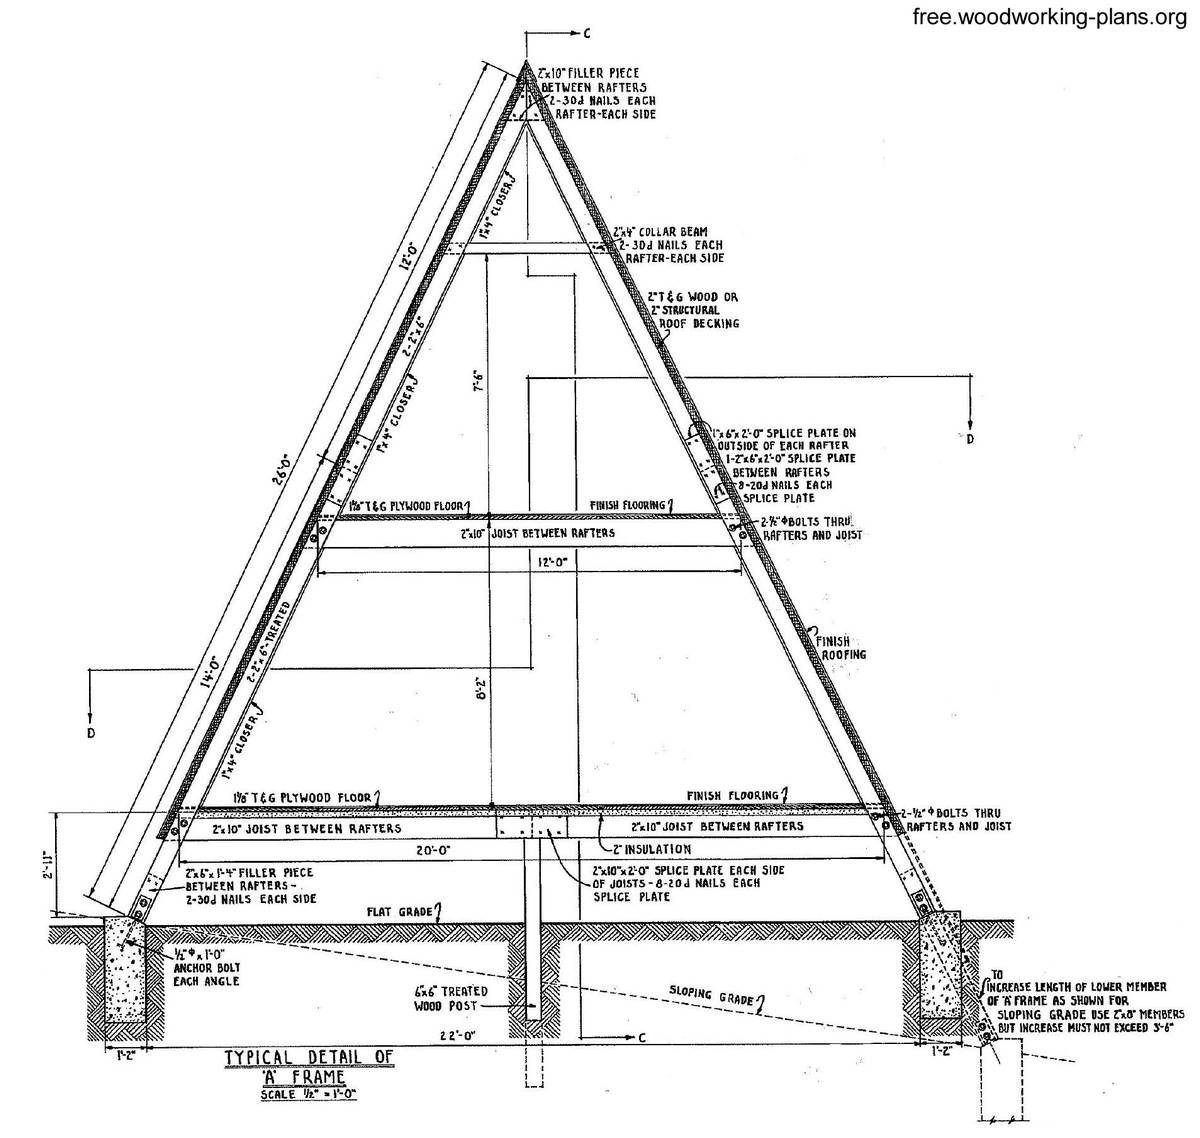 seccion de una estructura y cimientos casa tipo a pinterest discover thousands of images about free a frame cabin plans from usda ndsu univ of maryland